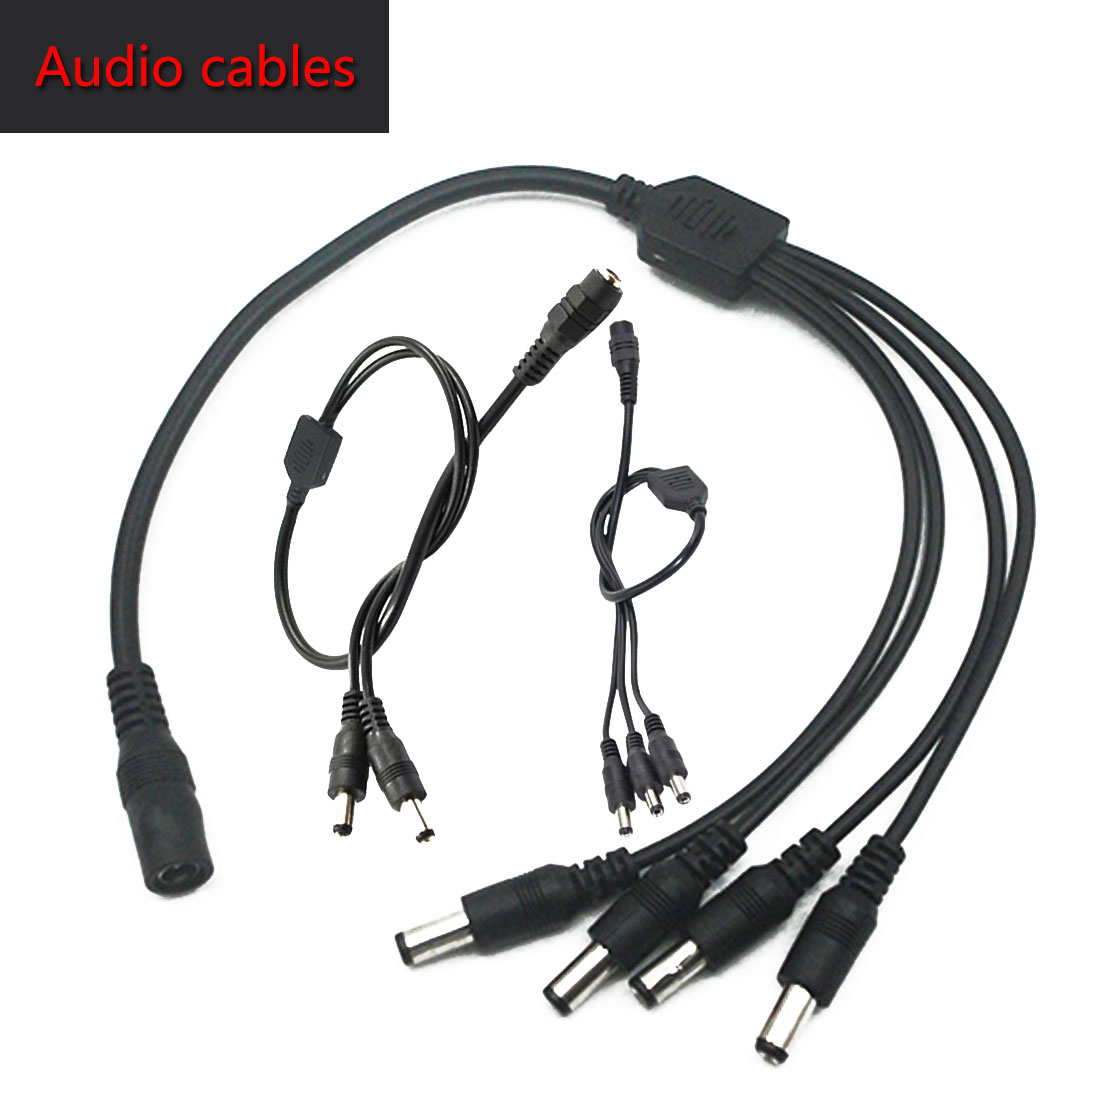 1 DC Female To 2/3/4 Male Plug Power Cord Adapter Connector Cable Splitter for LED Strip Security Camera